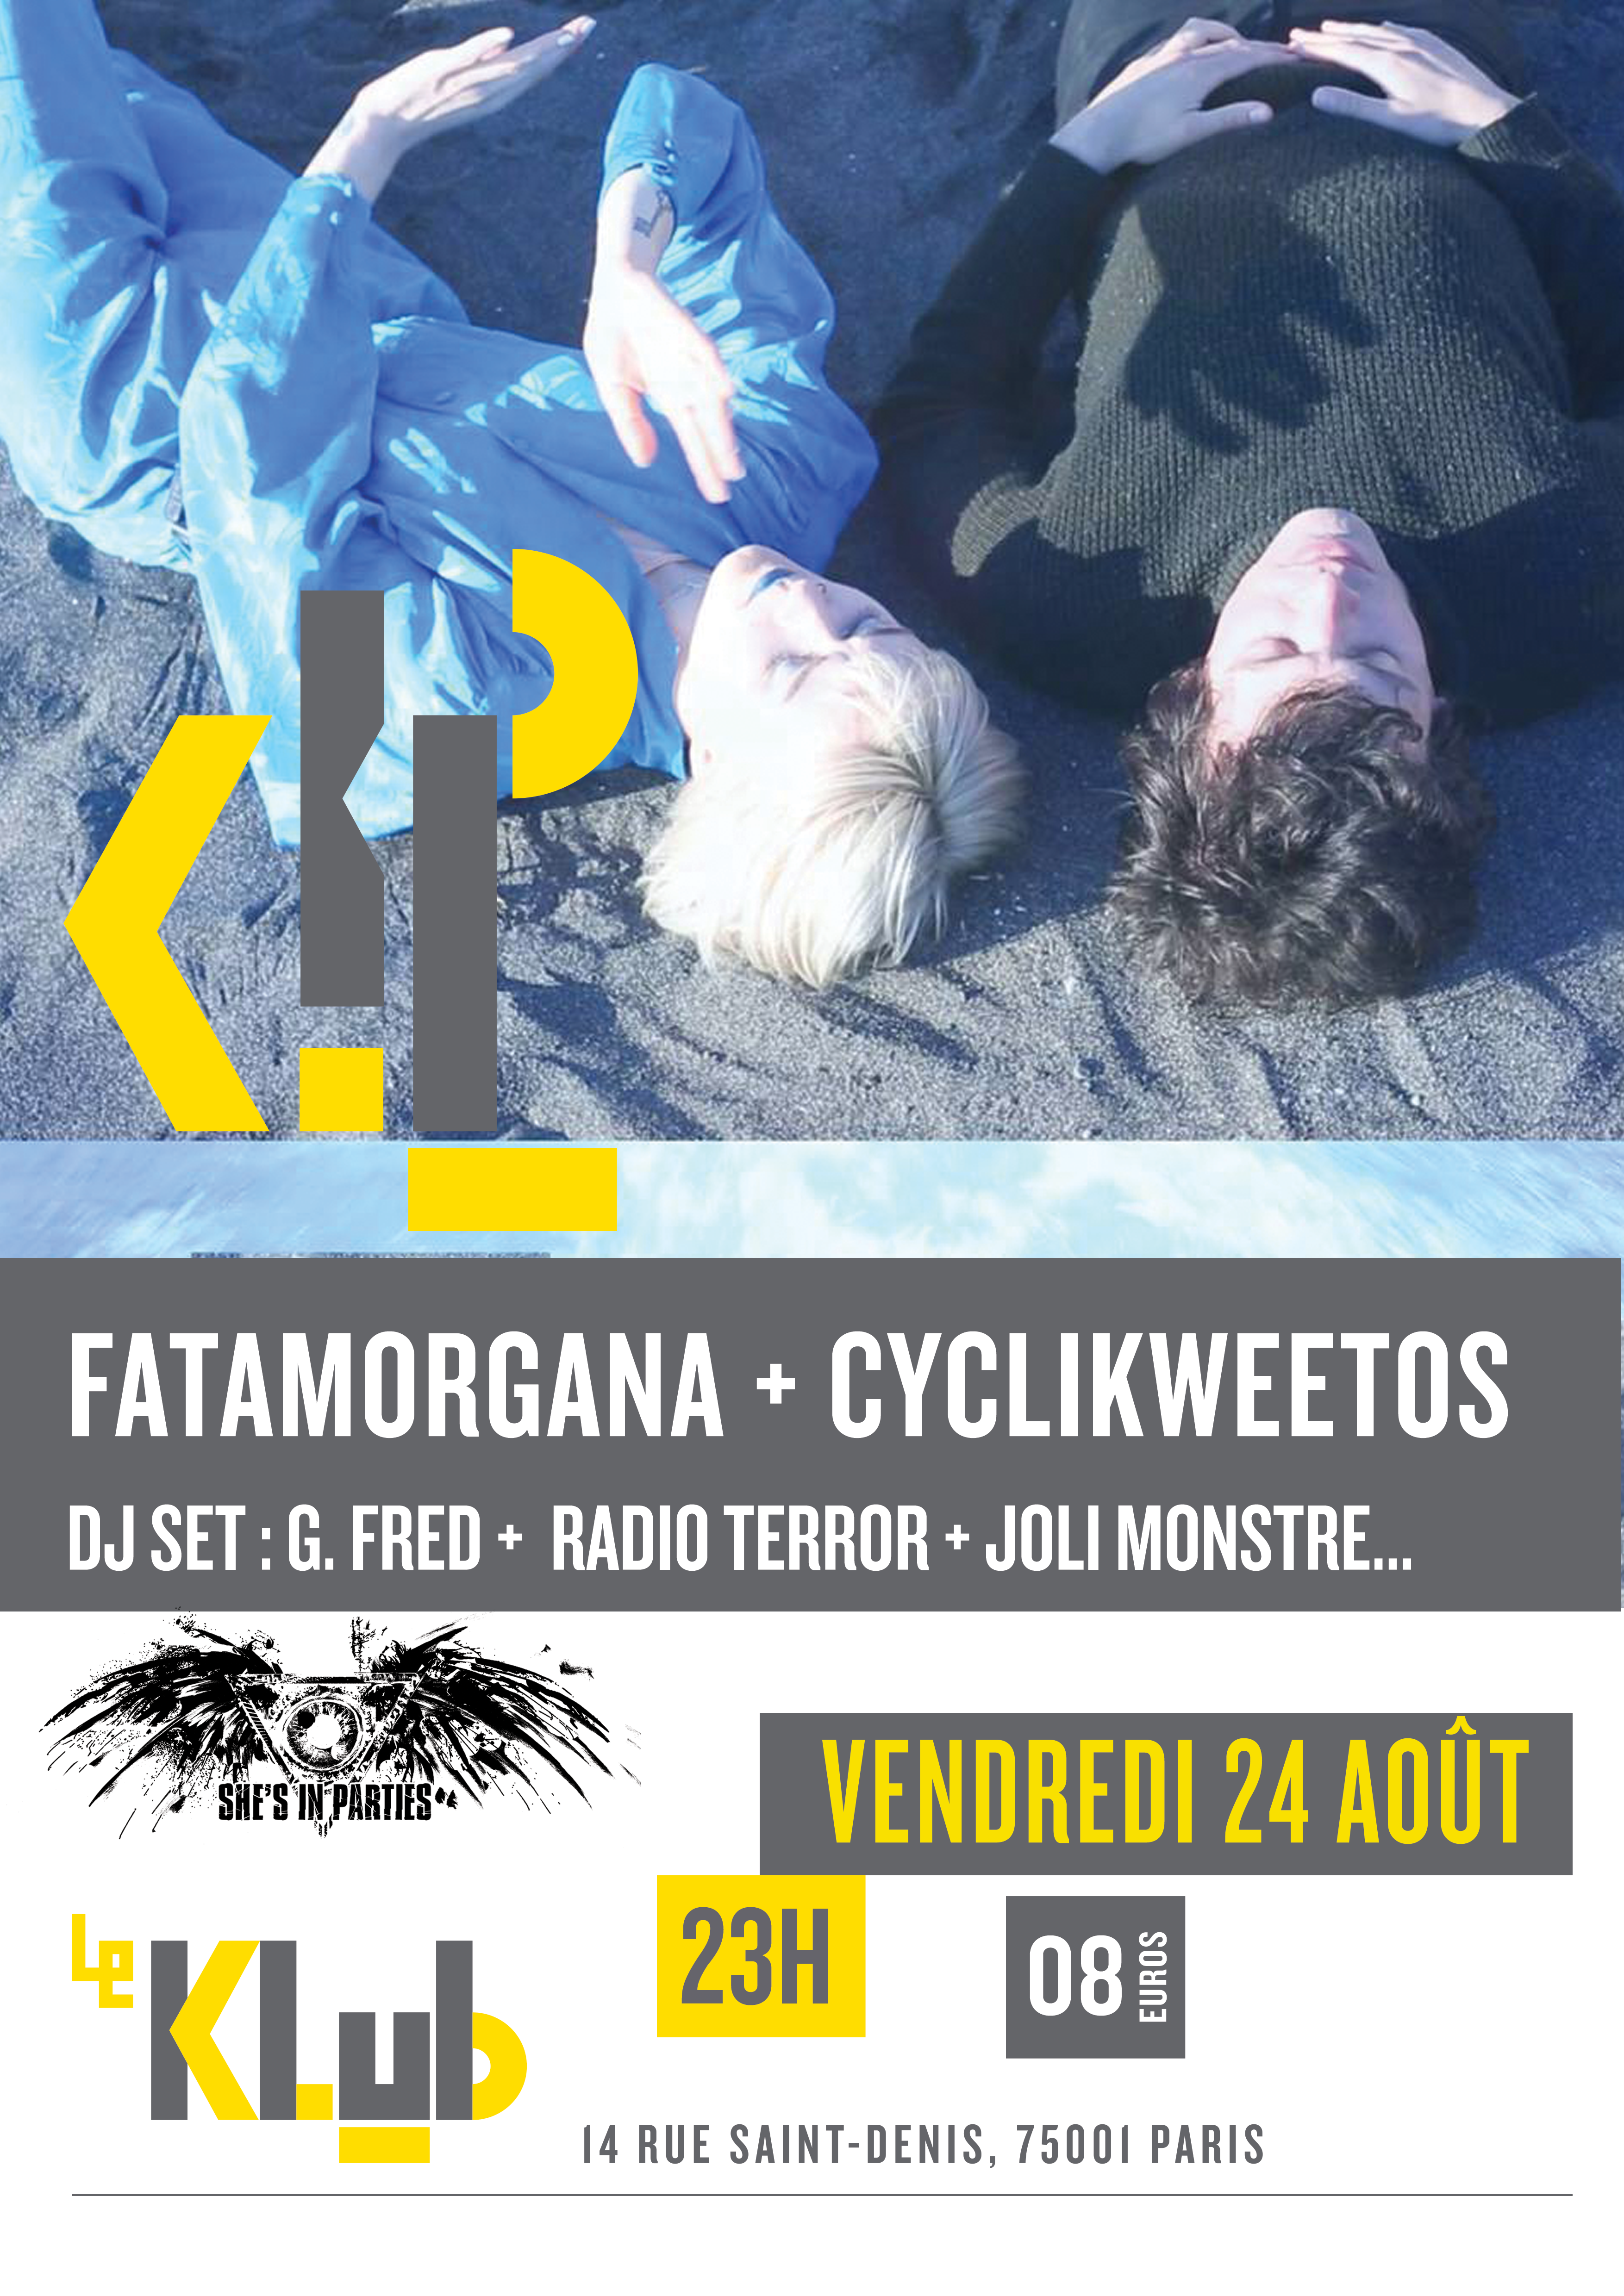 SUMMER SHE'S IN PARTIES #5 ■ 24.08 ■ LE KLUB